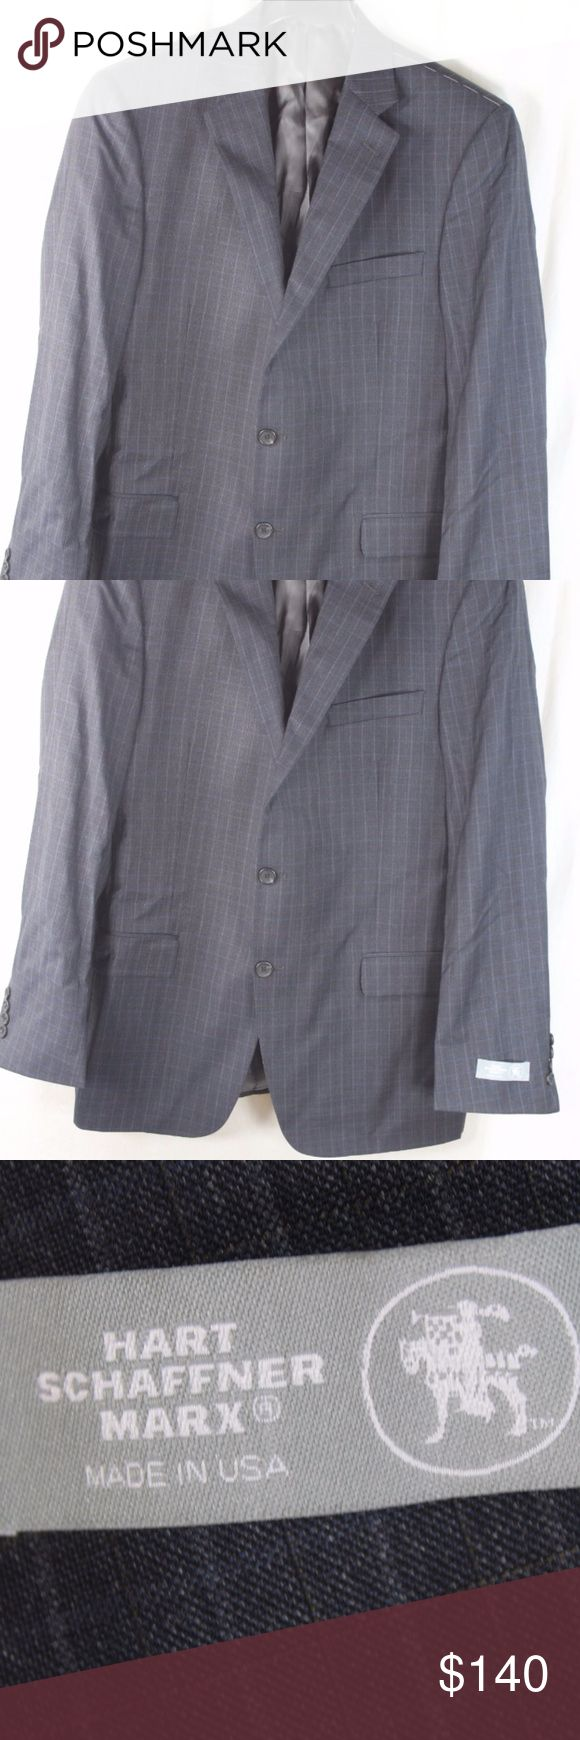 "ART SCHAFFNER MARX GRAY PLAID WOOL BLAZER 38R Measurements (we actually measured these)  ARMPIT/ARMPIT:	     24""  INSEAM:  	"" LENGTH:	30""   Style:			WOOL;  Condition:	                                                    BRAND NEW WITH TAGS. SOURCED DIRECTLY FROM AN UPSCALE US RETAILER.  15-144-N7 Hart Schaffner Marx Suits & Blazers Sport Coats & Blazers"